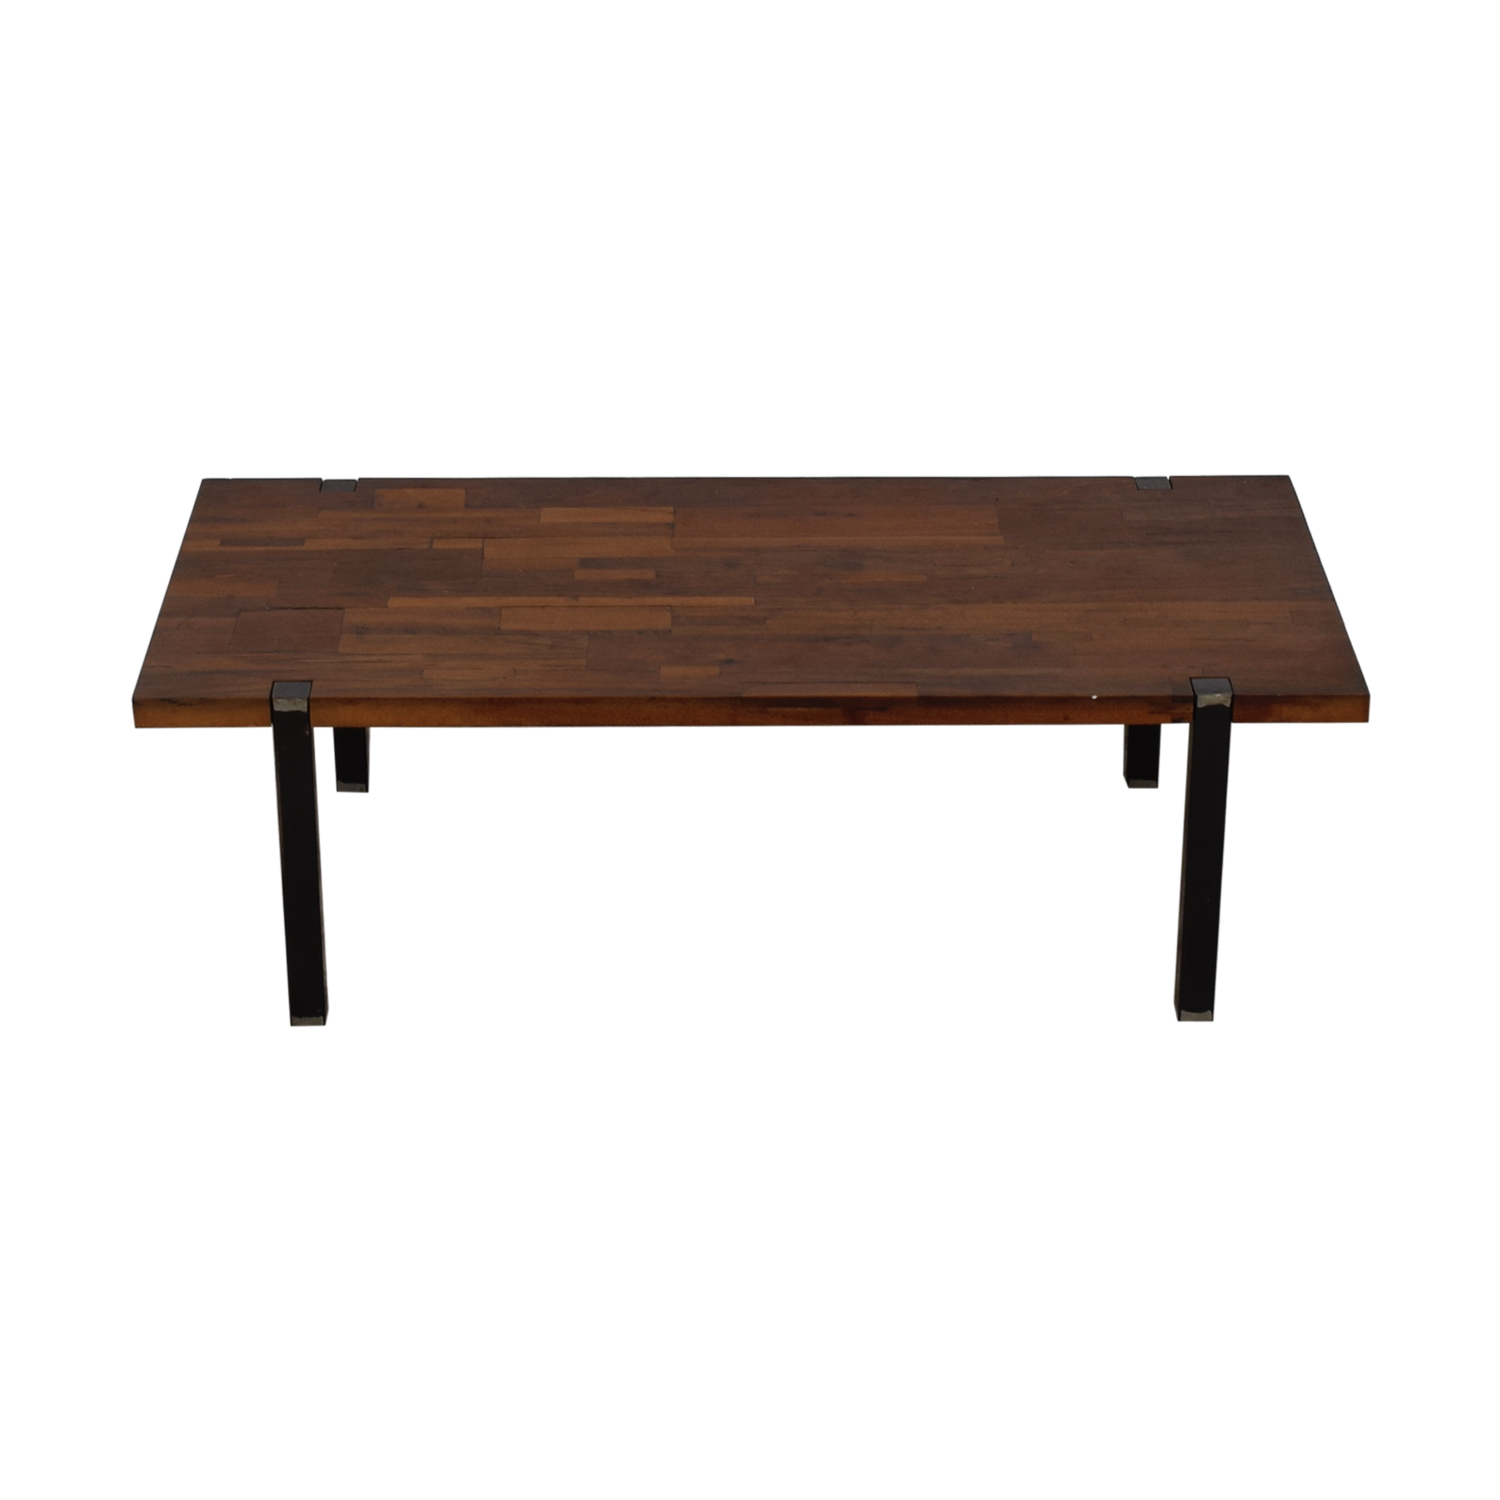 CB2 CB2 Reclaimed Railroad Wood Coffee Table for sale